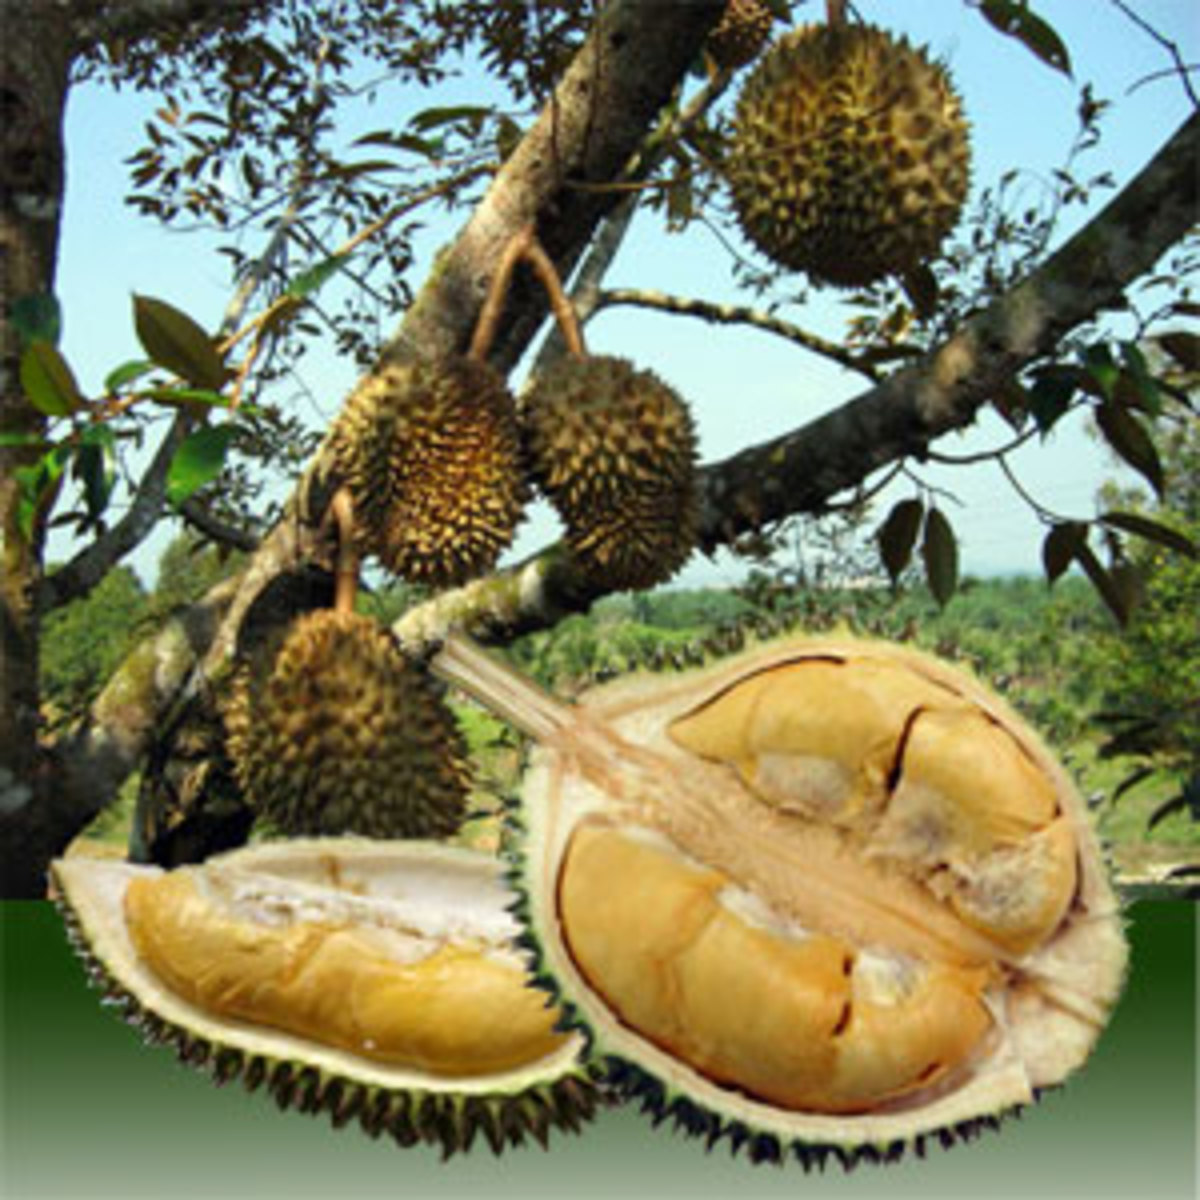 The common durian - Durio zibethinus L. - is a major icon so central in the life of the people living in Southeast Asia.